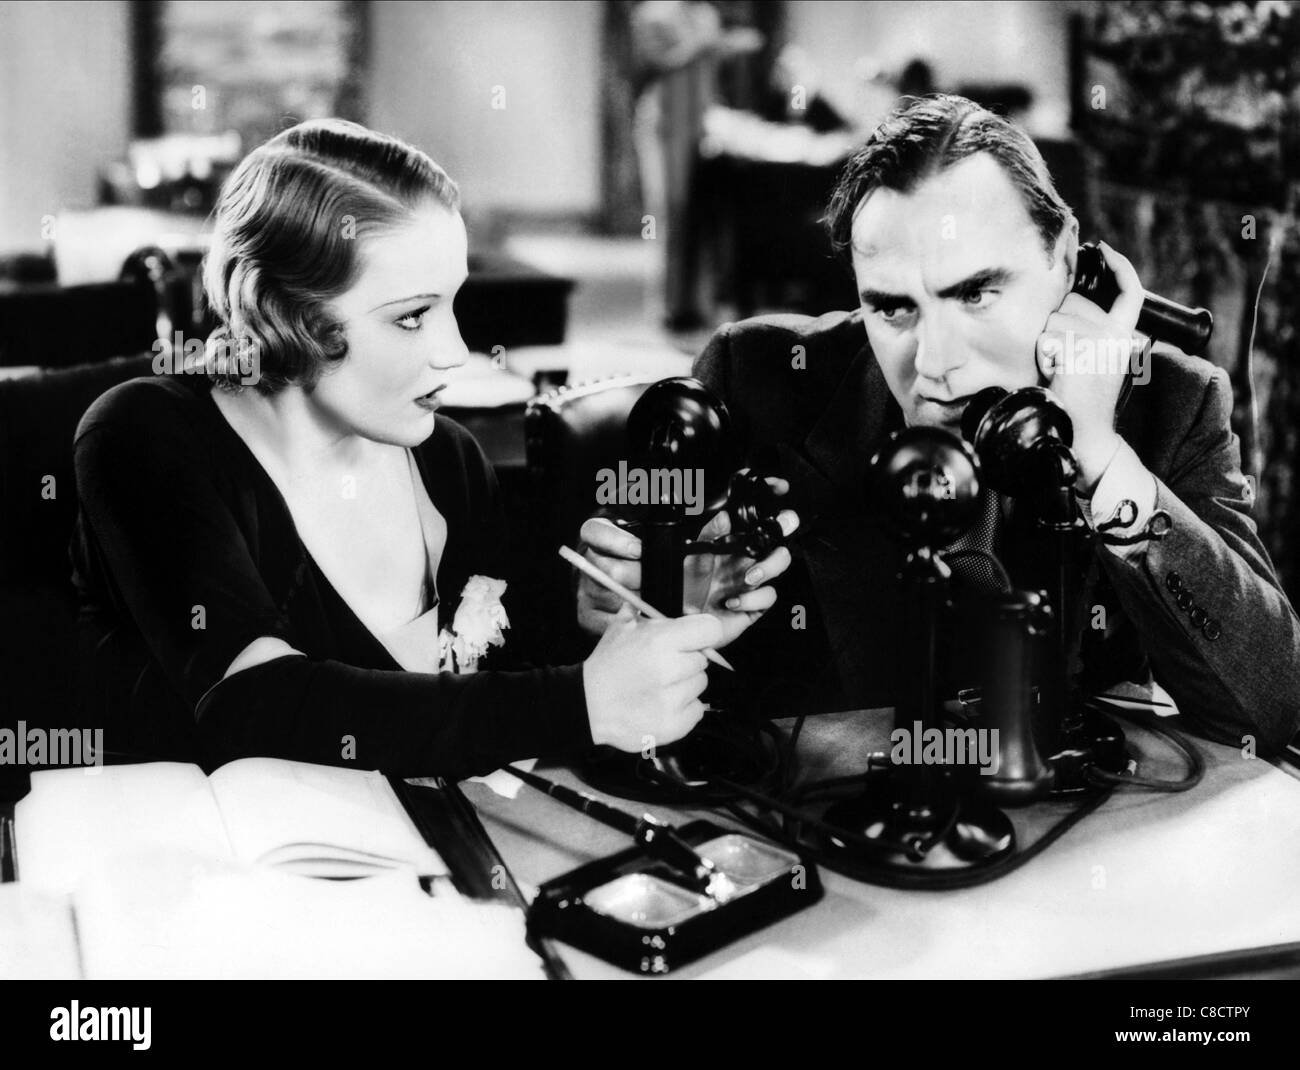 CONSTANCE CUMMINGS, PAT O'BRIEN, AMERICAN MADNESS, 1932 Stock Photo